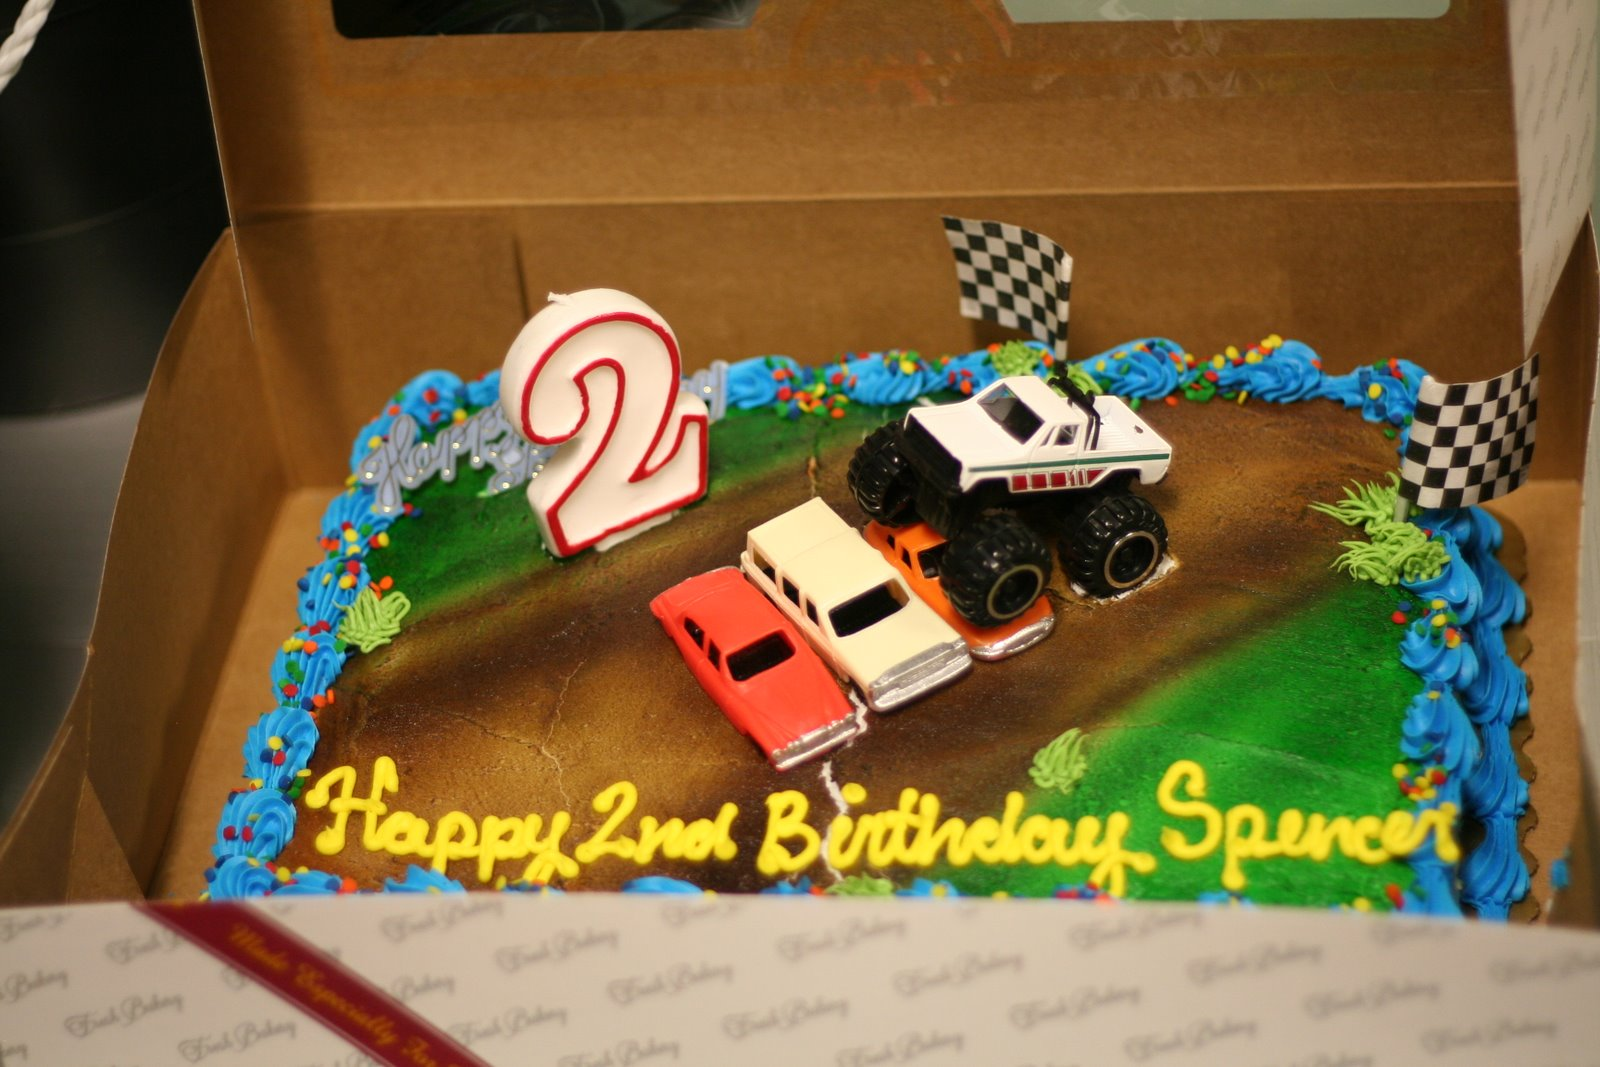 Spencer's 2nd birthday cake